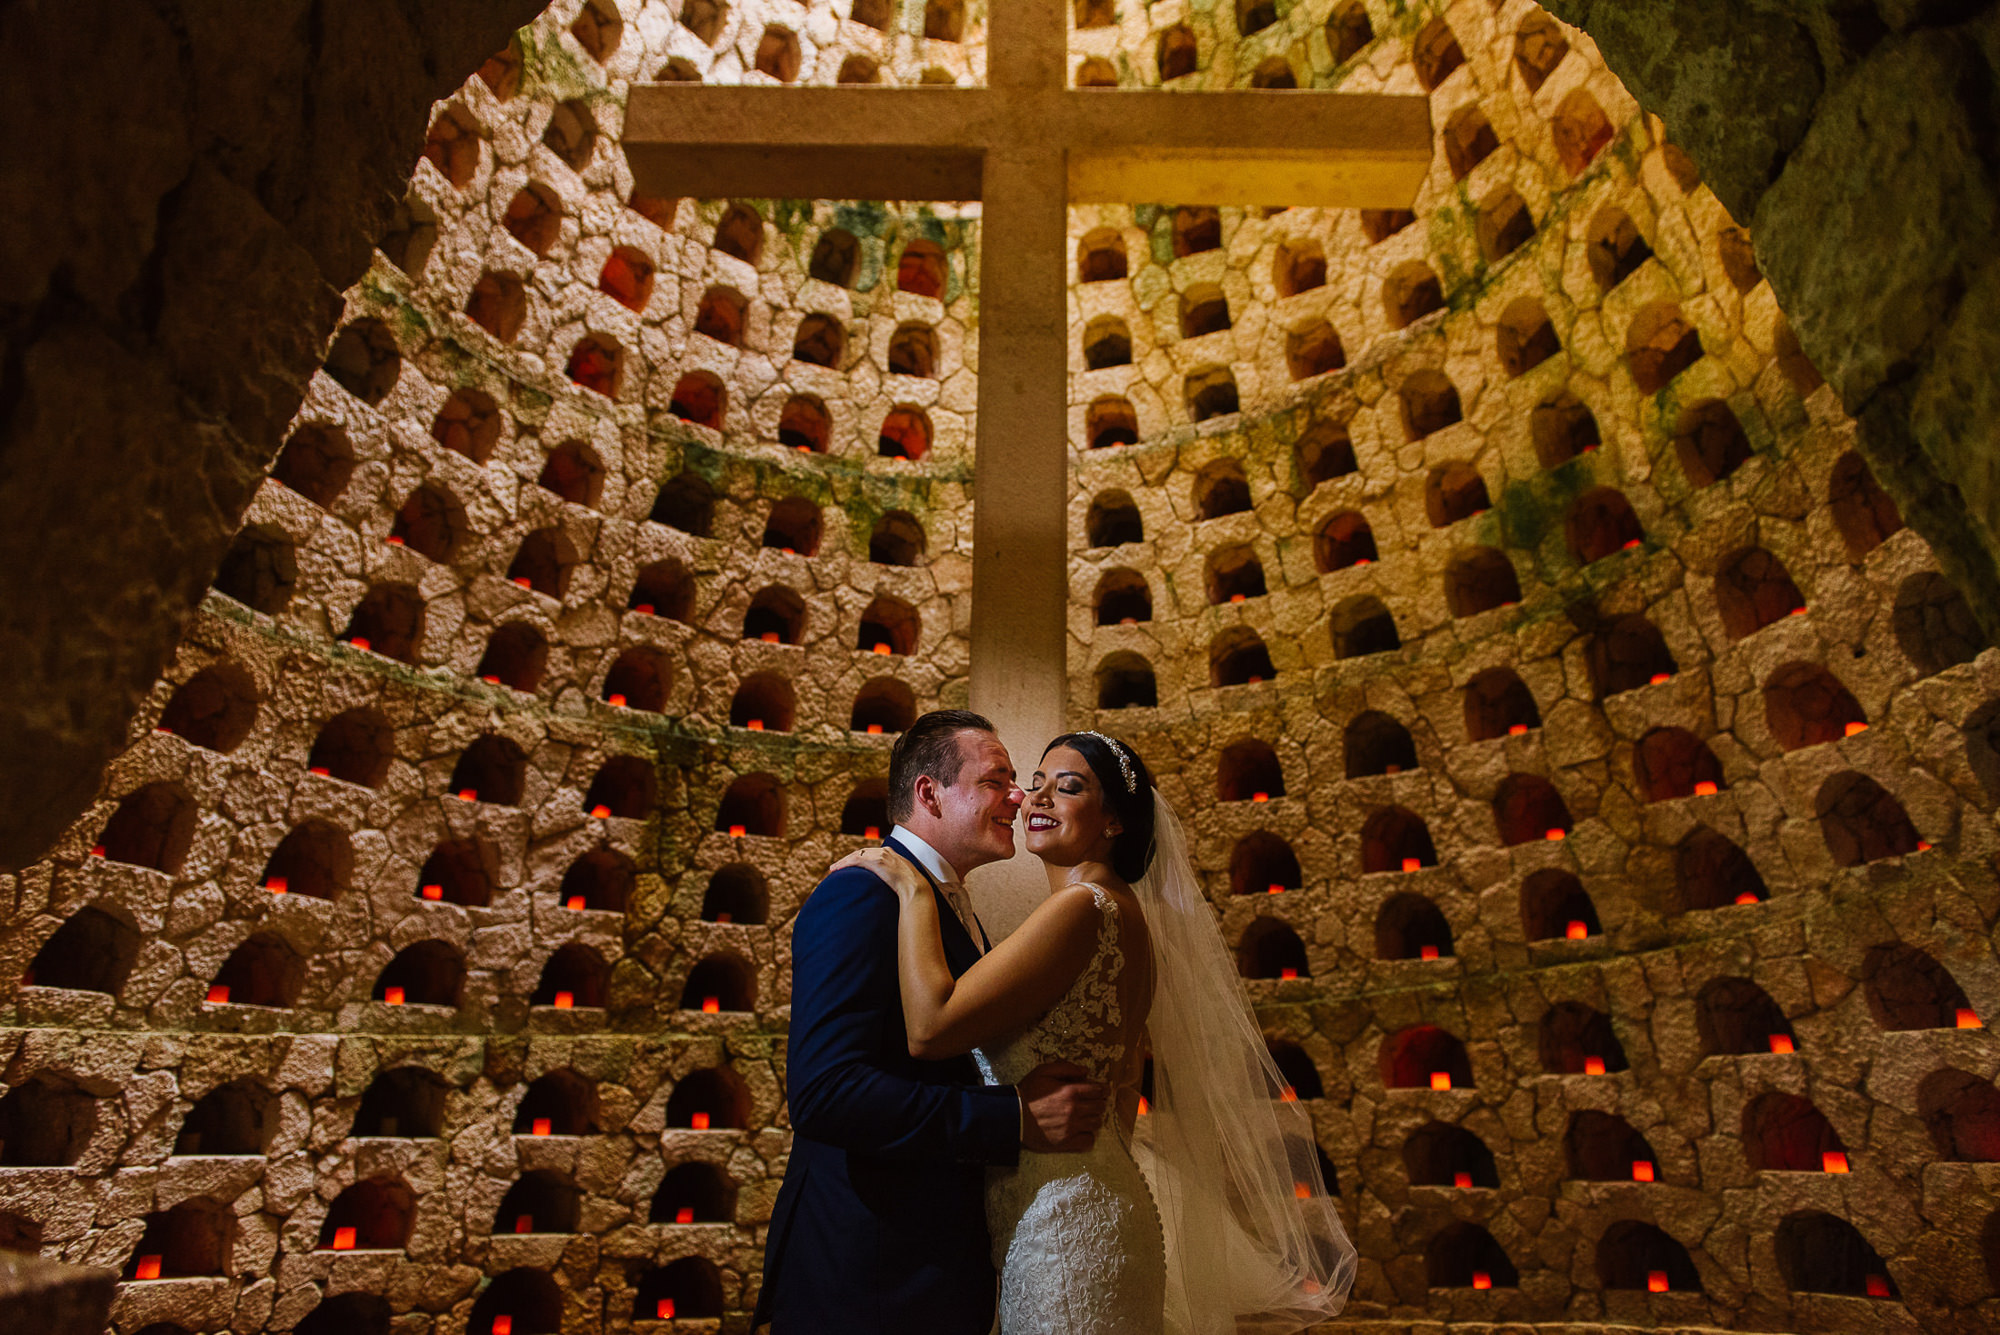 Bride and groom pose in front of cross in underground church, by Citlalli Rico